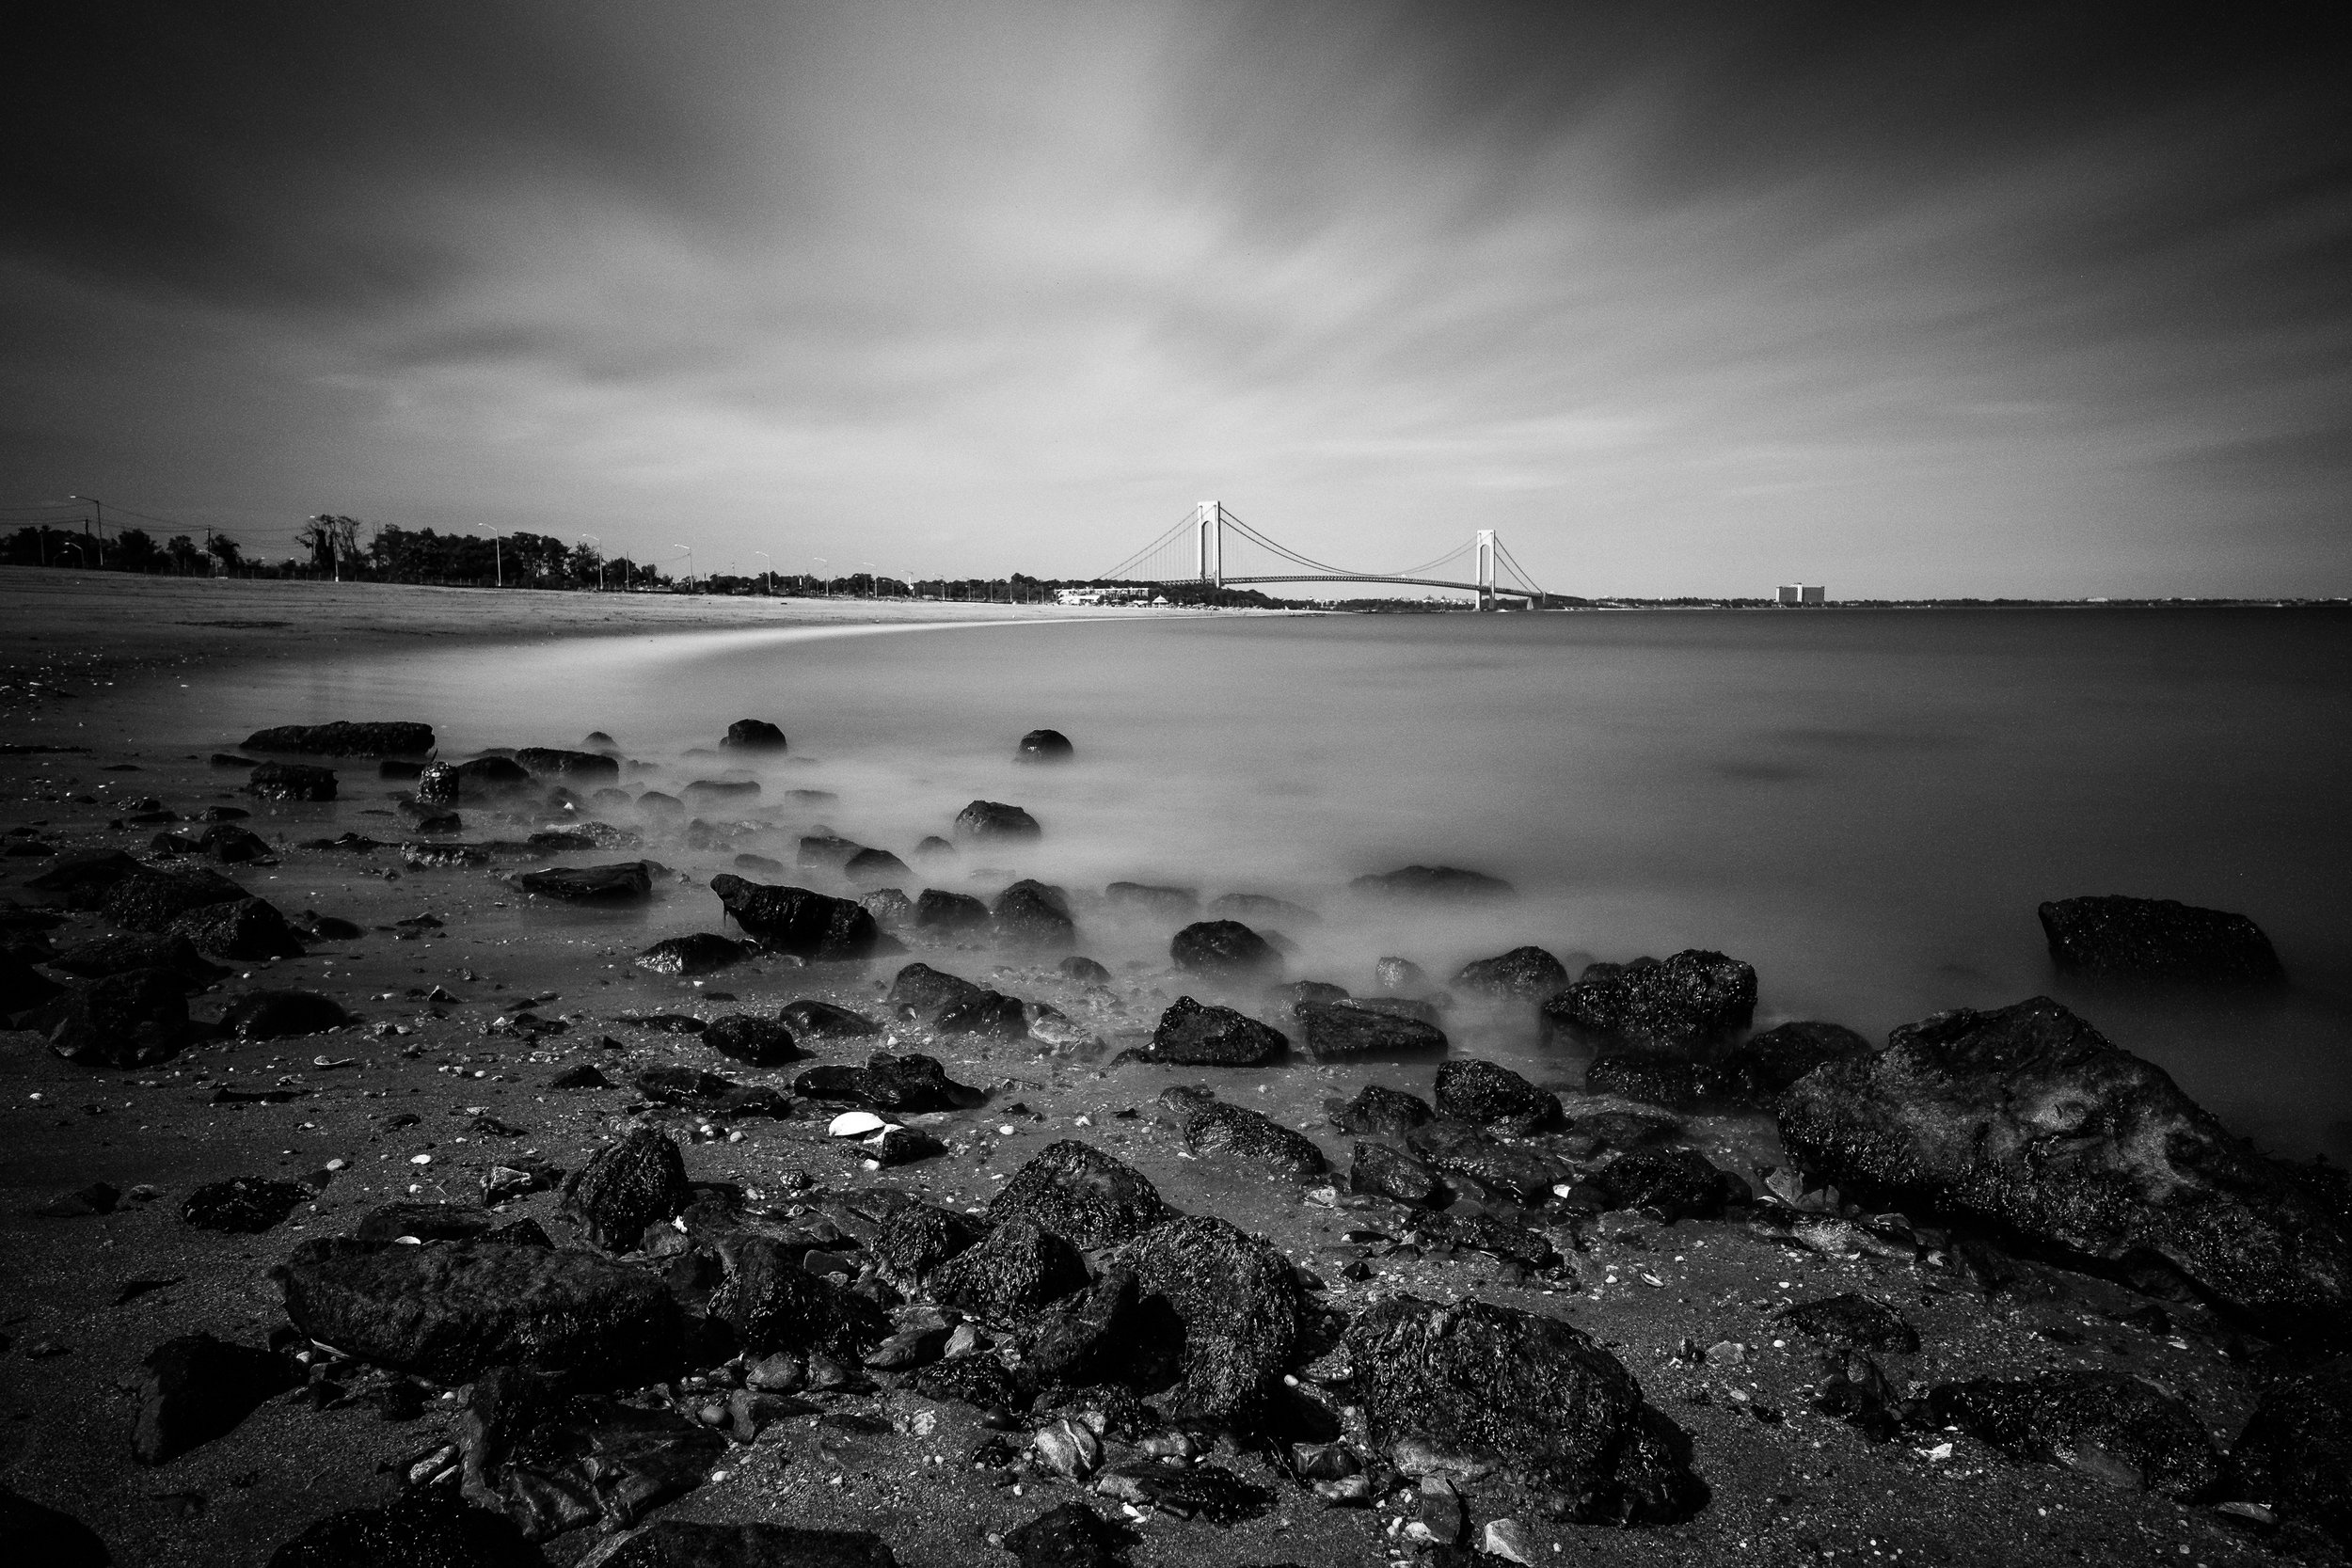 """Verrazano Bridge"" June 17, 2018. South Beach, Staten Island.  Fujifilm X Pro2, 14mm, f/8, 241 sec, ISO 200   Staten Island has incredible beaches. Who knew?"